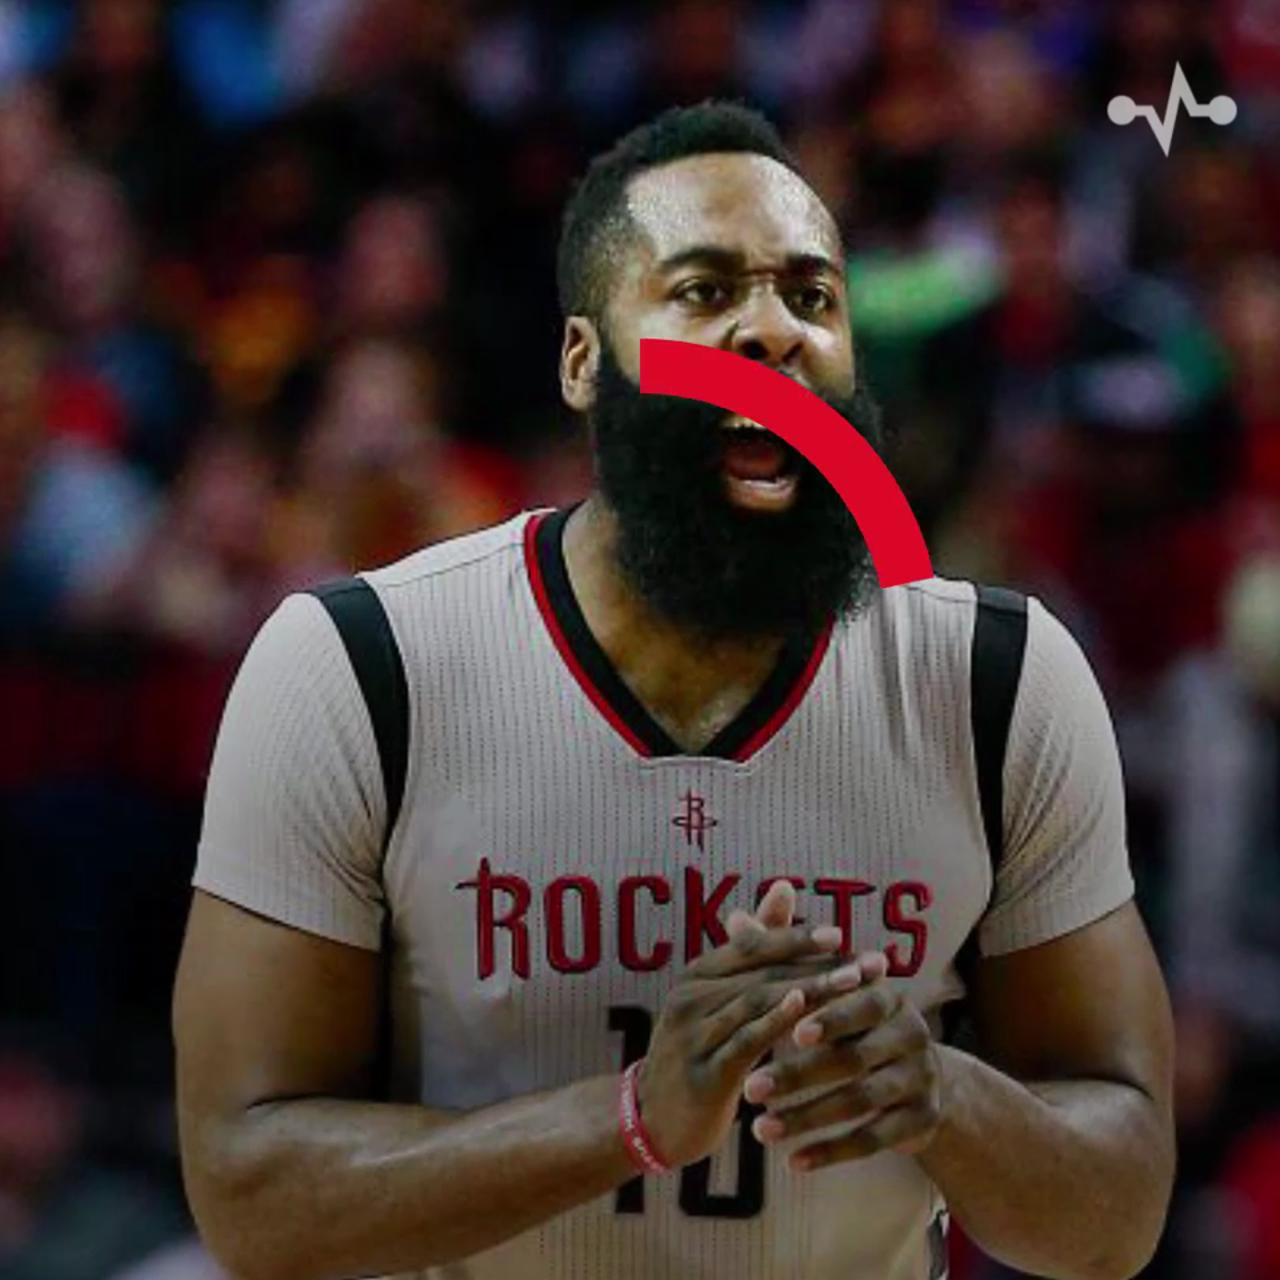 The arguments for and against Rockets star James Harden winning the MVP award.